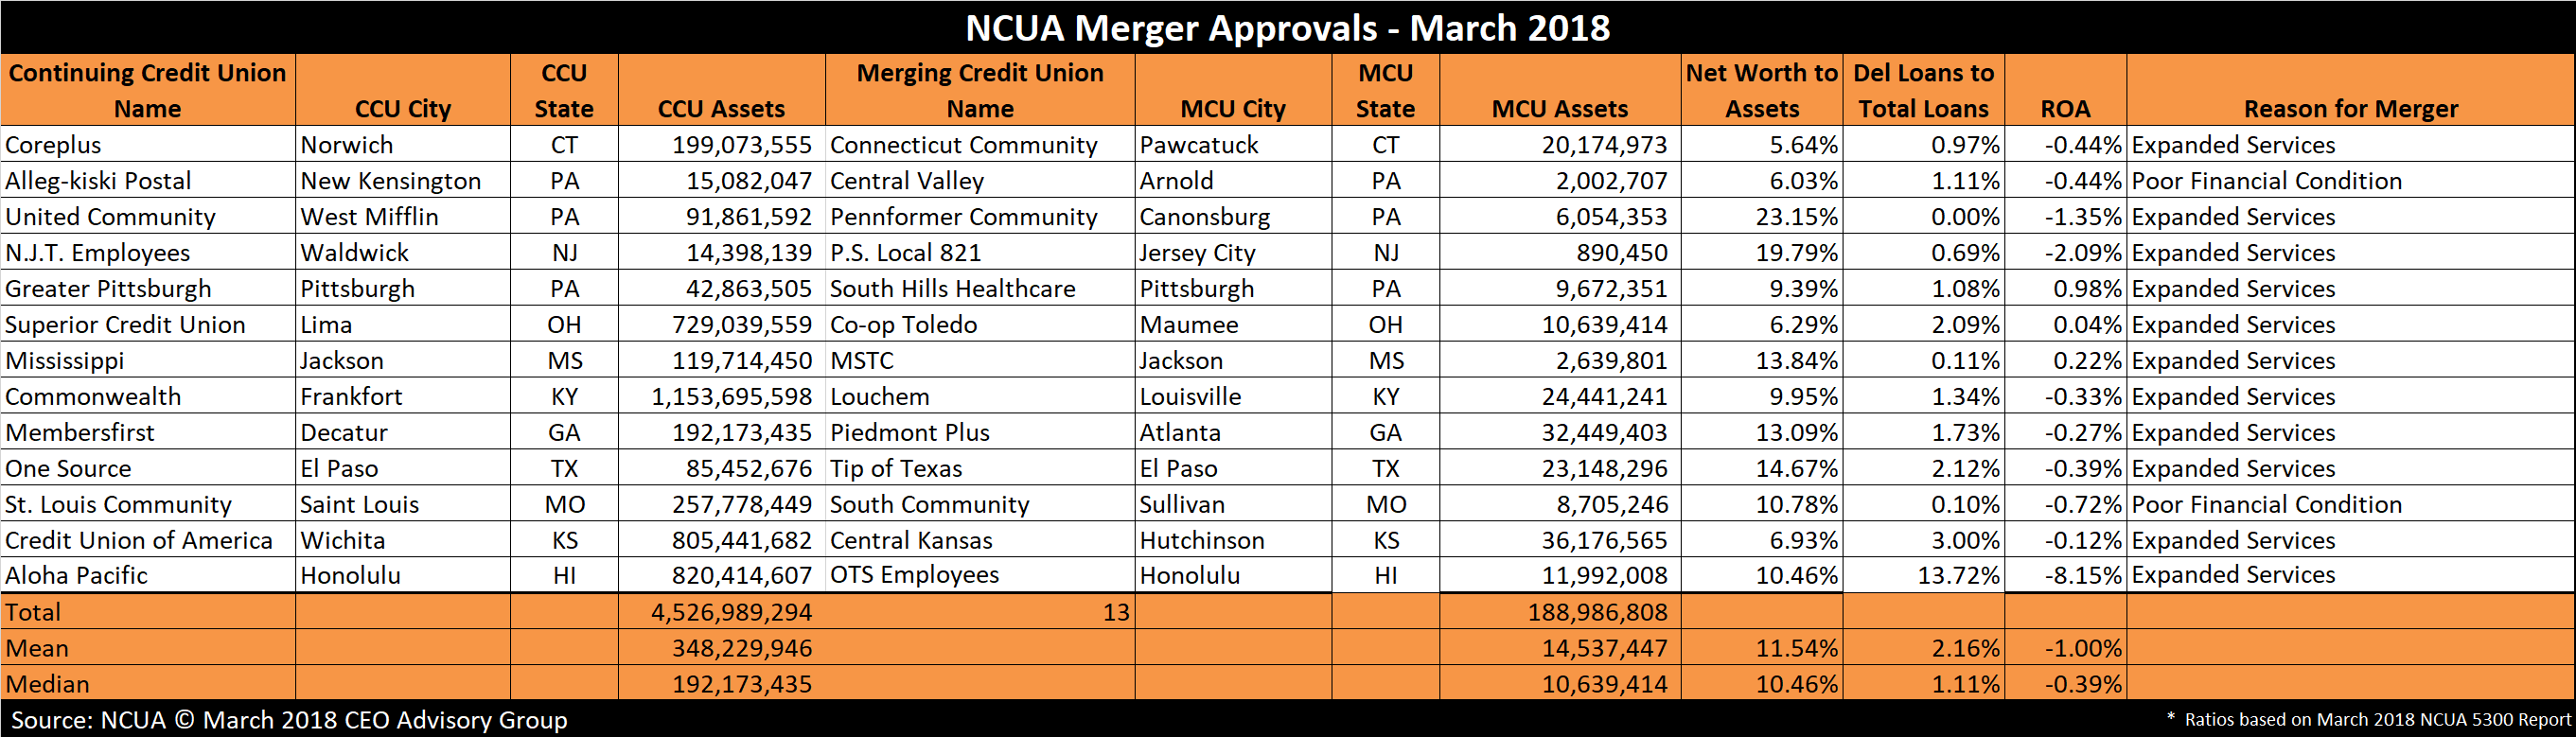 Credit Union Mergers - March 2018